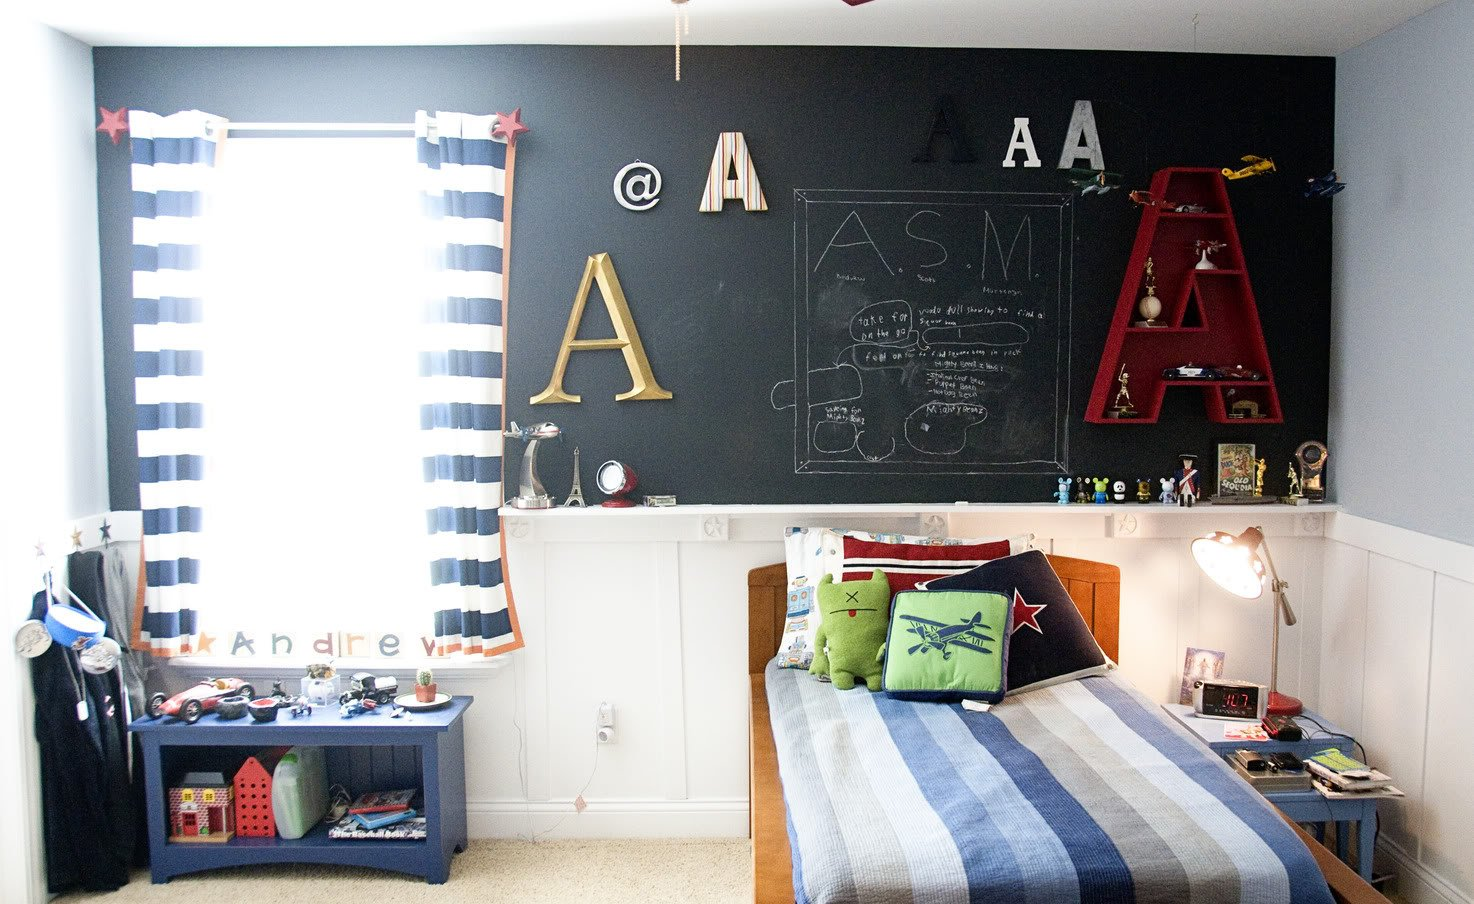 ideas for decorating boys bedroom - How To Decorate Boys Room Ideas